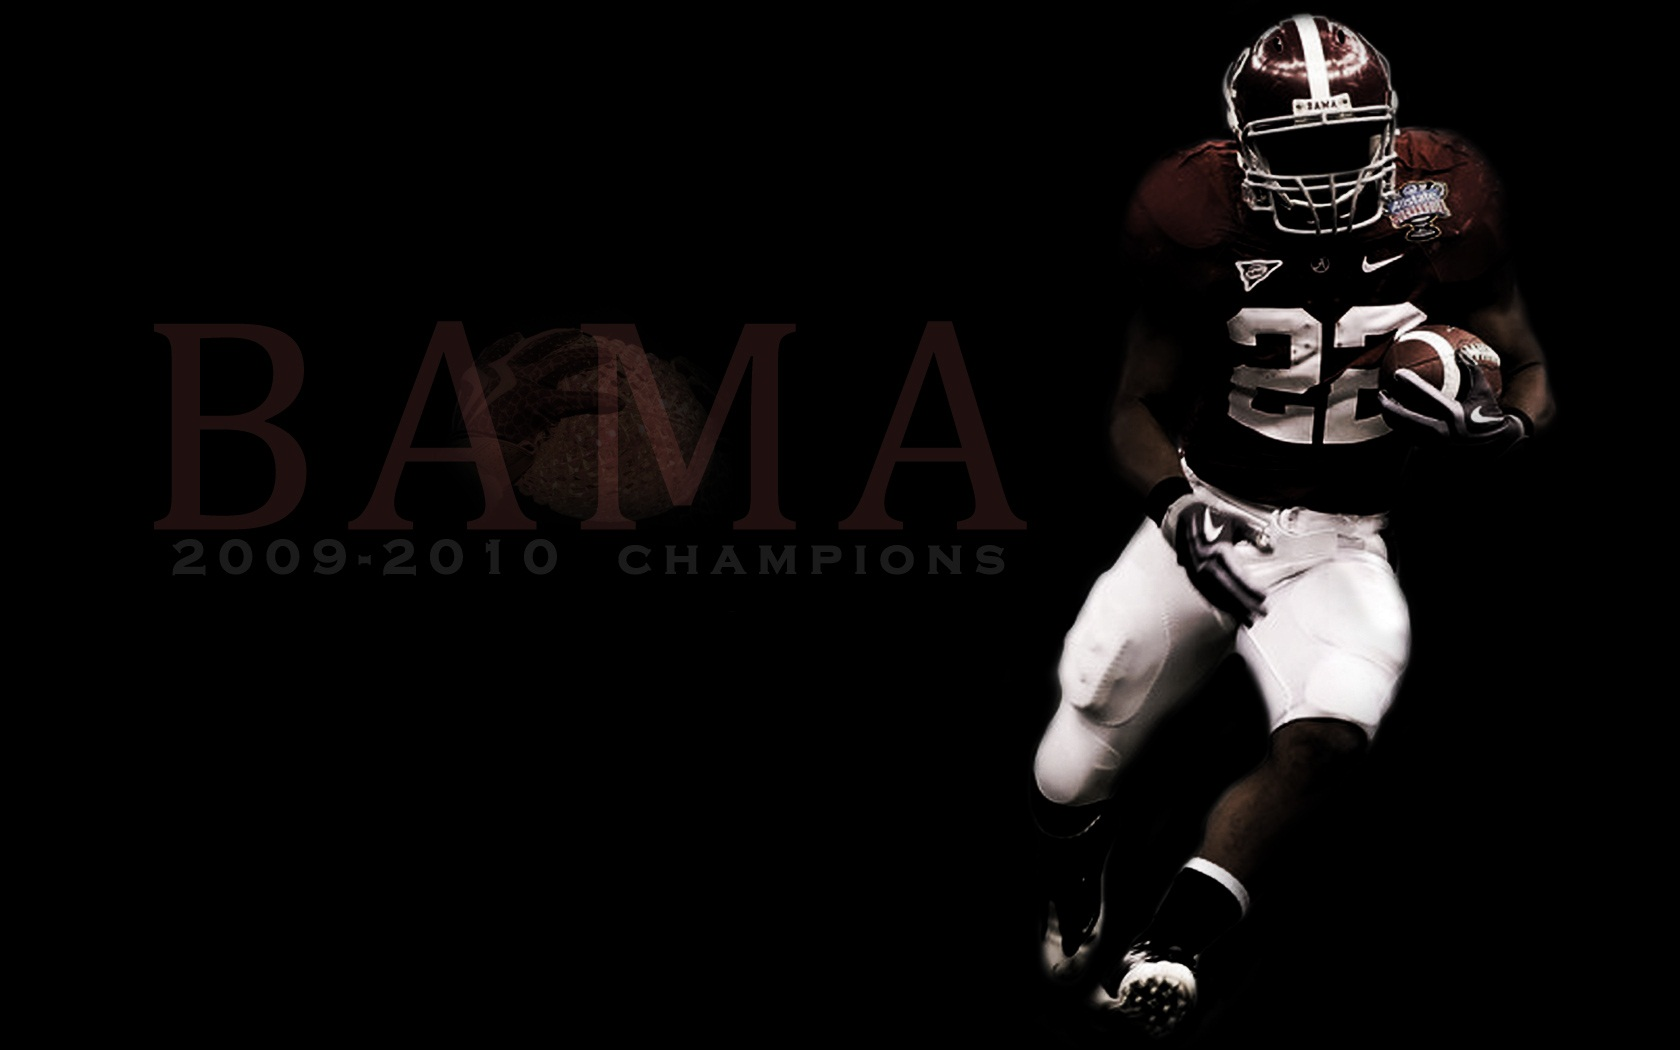 Football Wallpapers | Free Alabama Football Wallpaper | Desktop ...